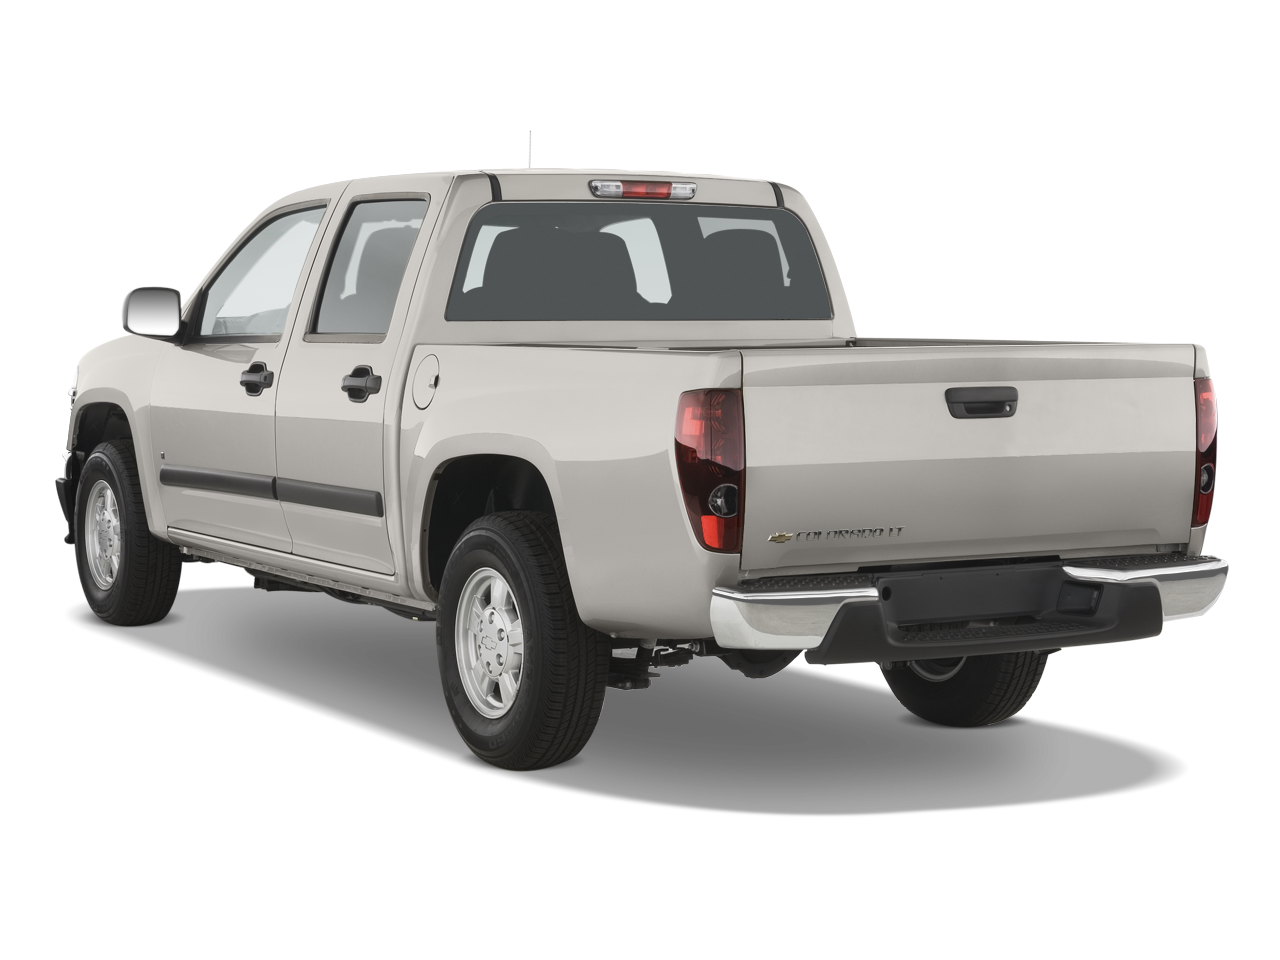 2009 chevy colorado and 2009 gmc canyon first drive. Black Bedroom Furniture Sets. Home Design Ideas